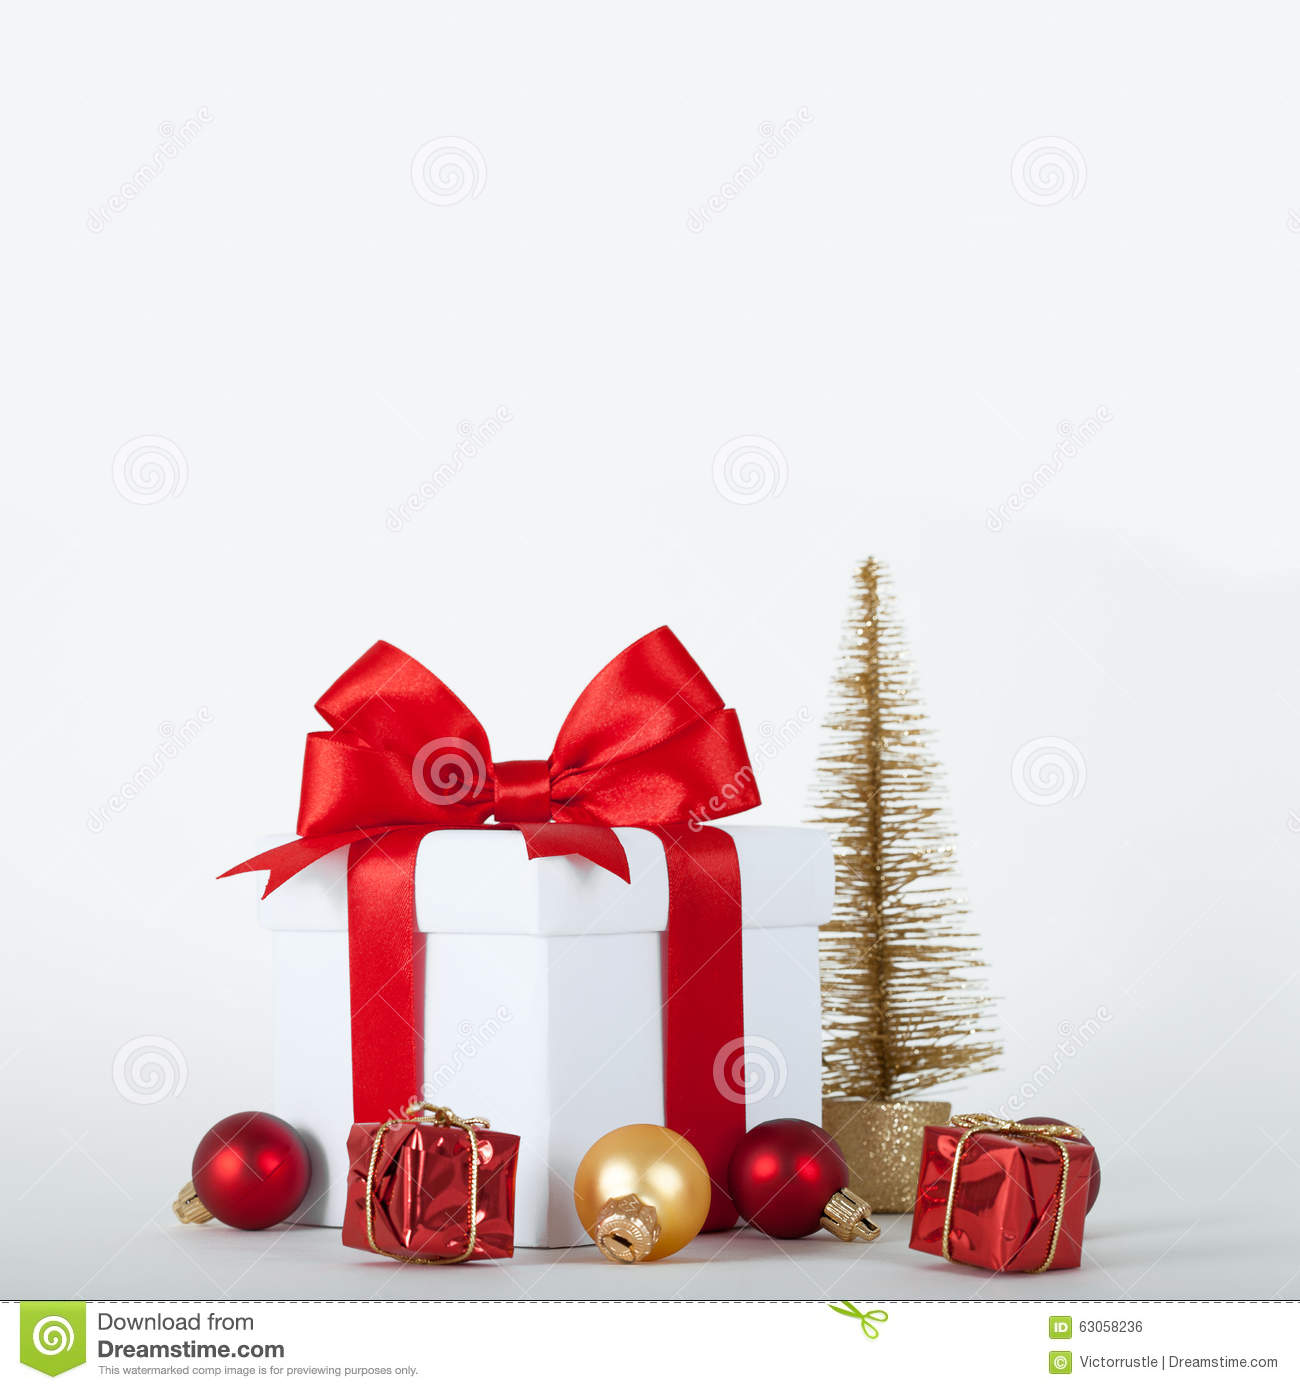 Christmas Presents And Ornaments On White Background Stock Photo ...